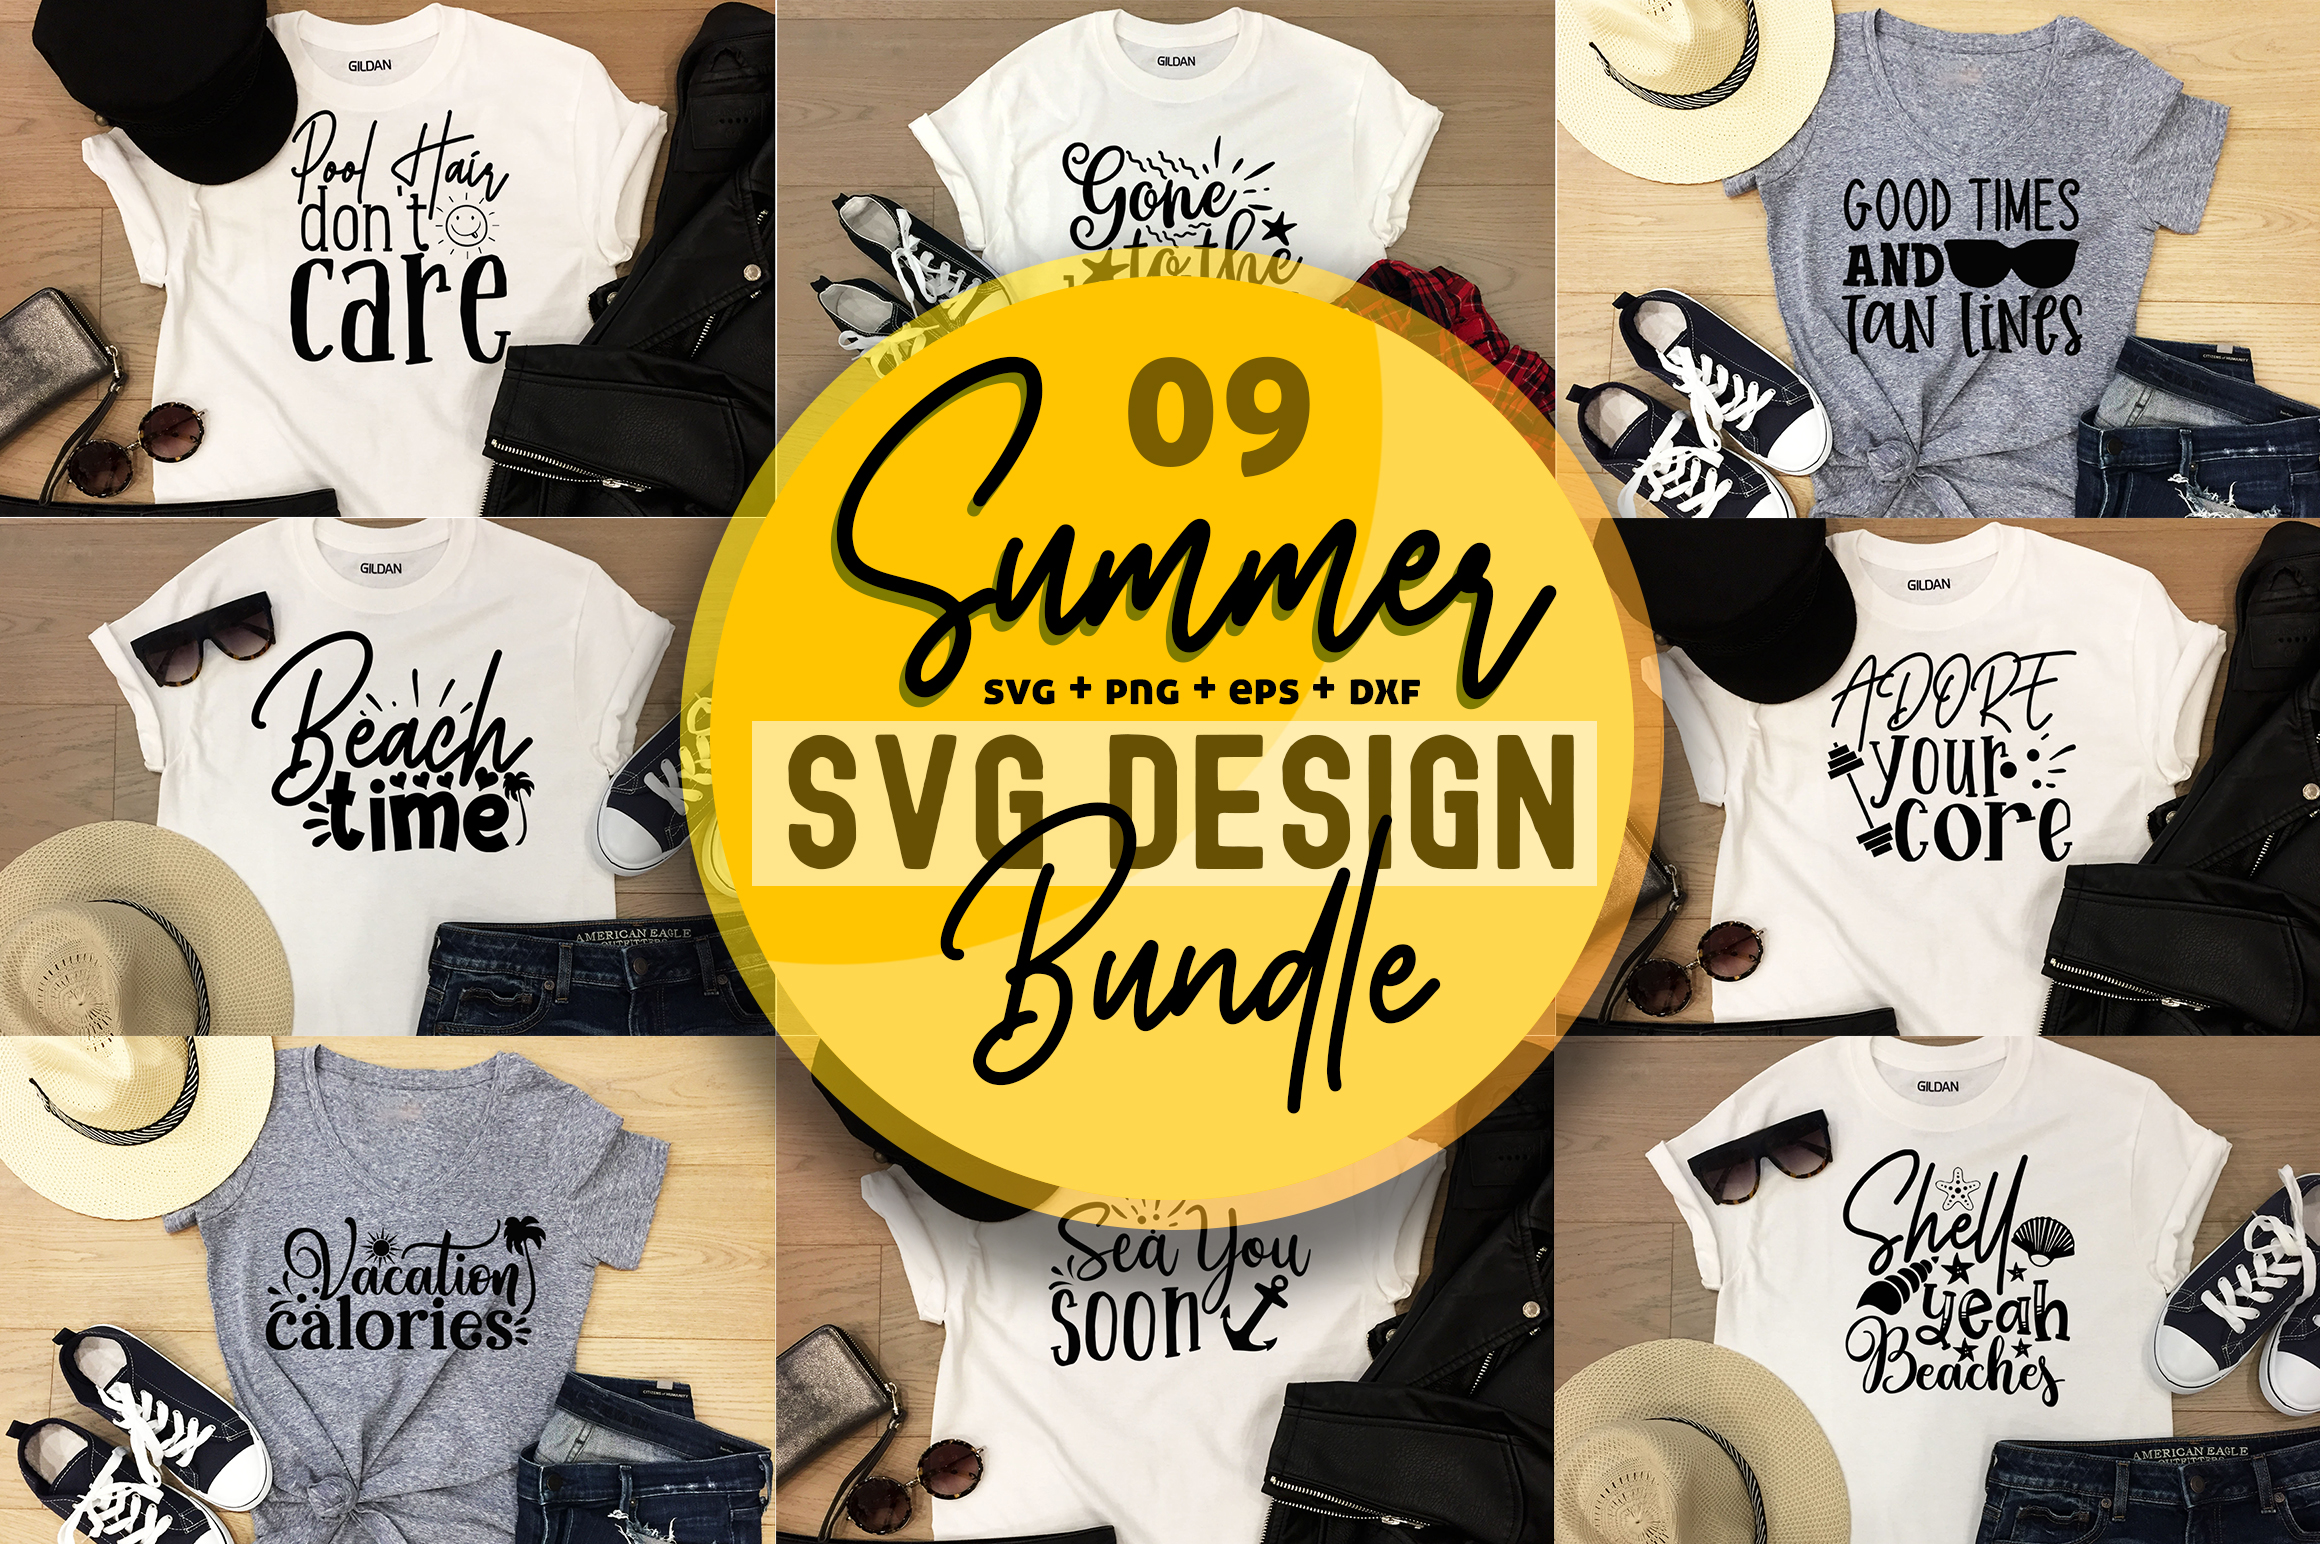 510 SVG DESIGN THE MIGHTY BUNDLE |32 DIFFERENT BUNDLES example image 28